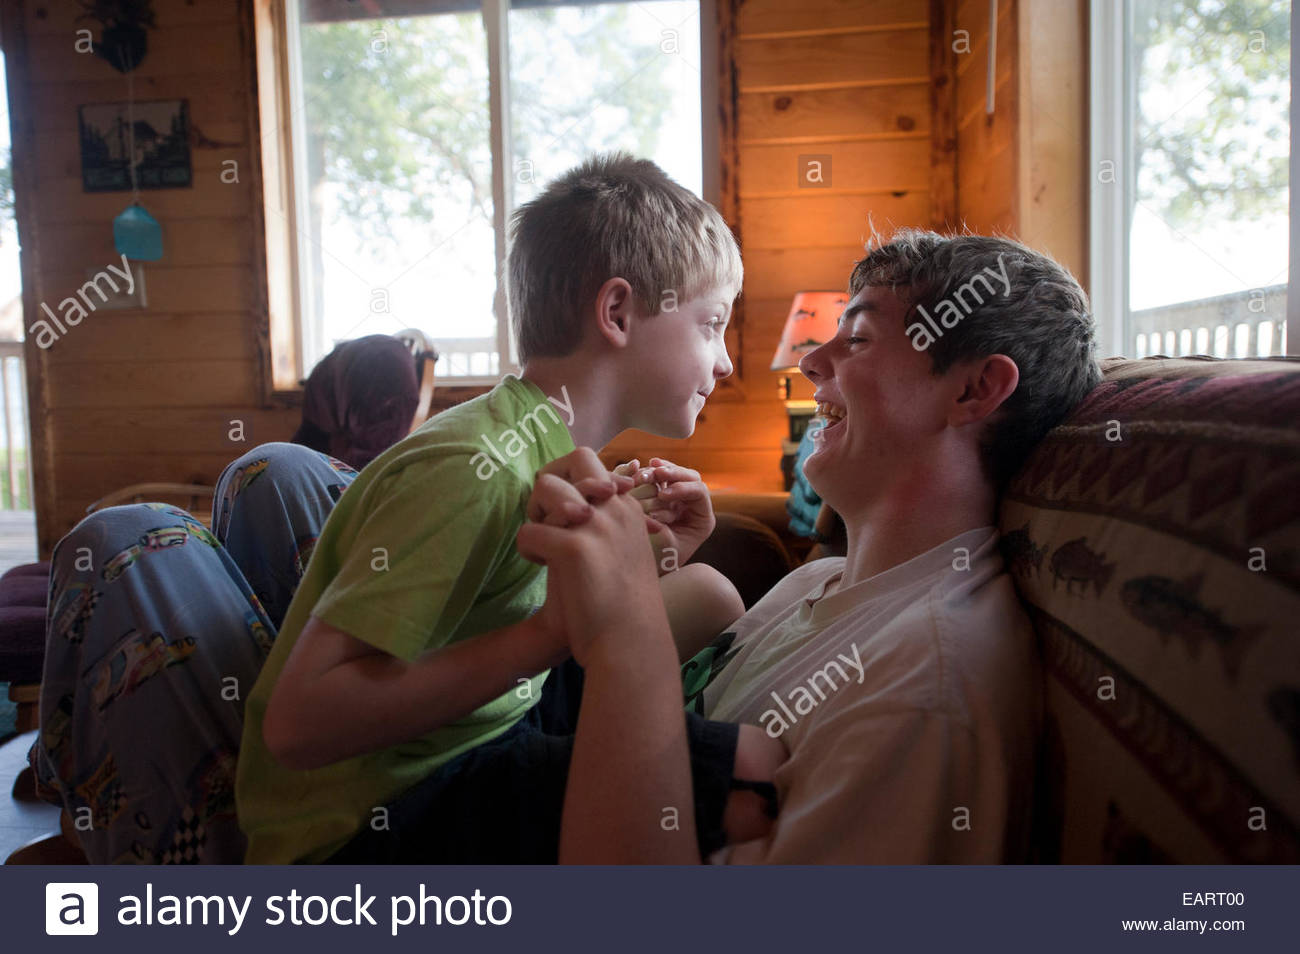 A young boy tries to wrestle with his older brother. - Stock Image